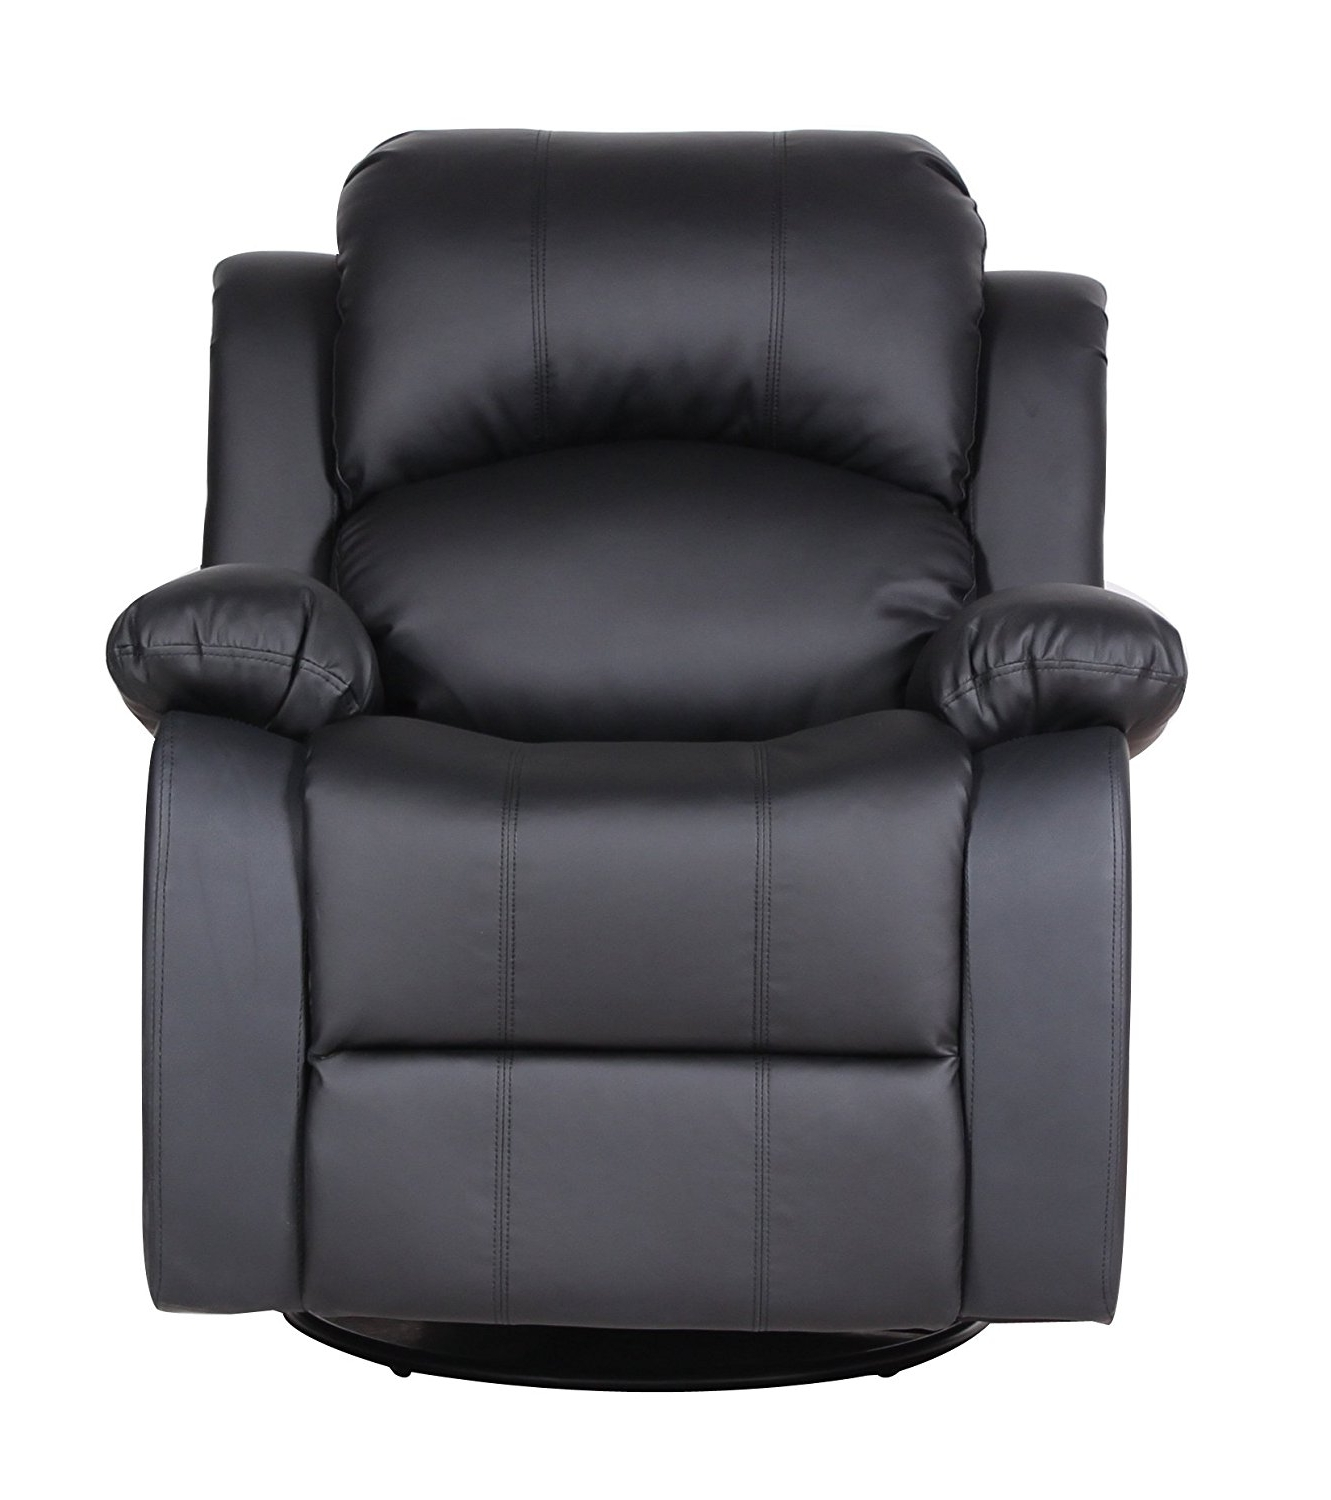 Rocking Sofa Chairs Regarding Most Recently Released Amazon: Bonded Leather Rocker And Swivel Recliner Living Room (View 4 of 15)